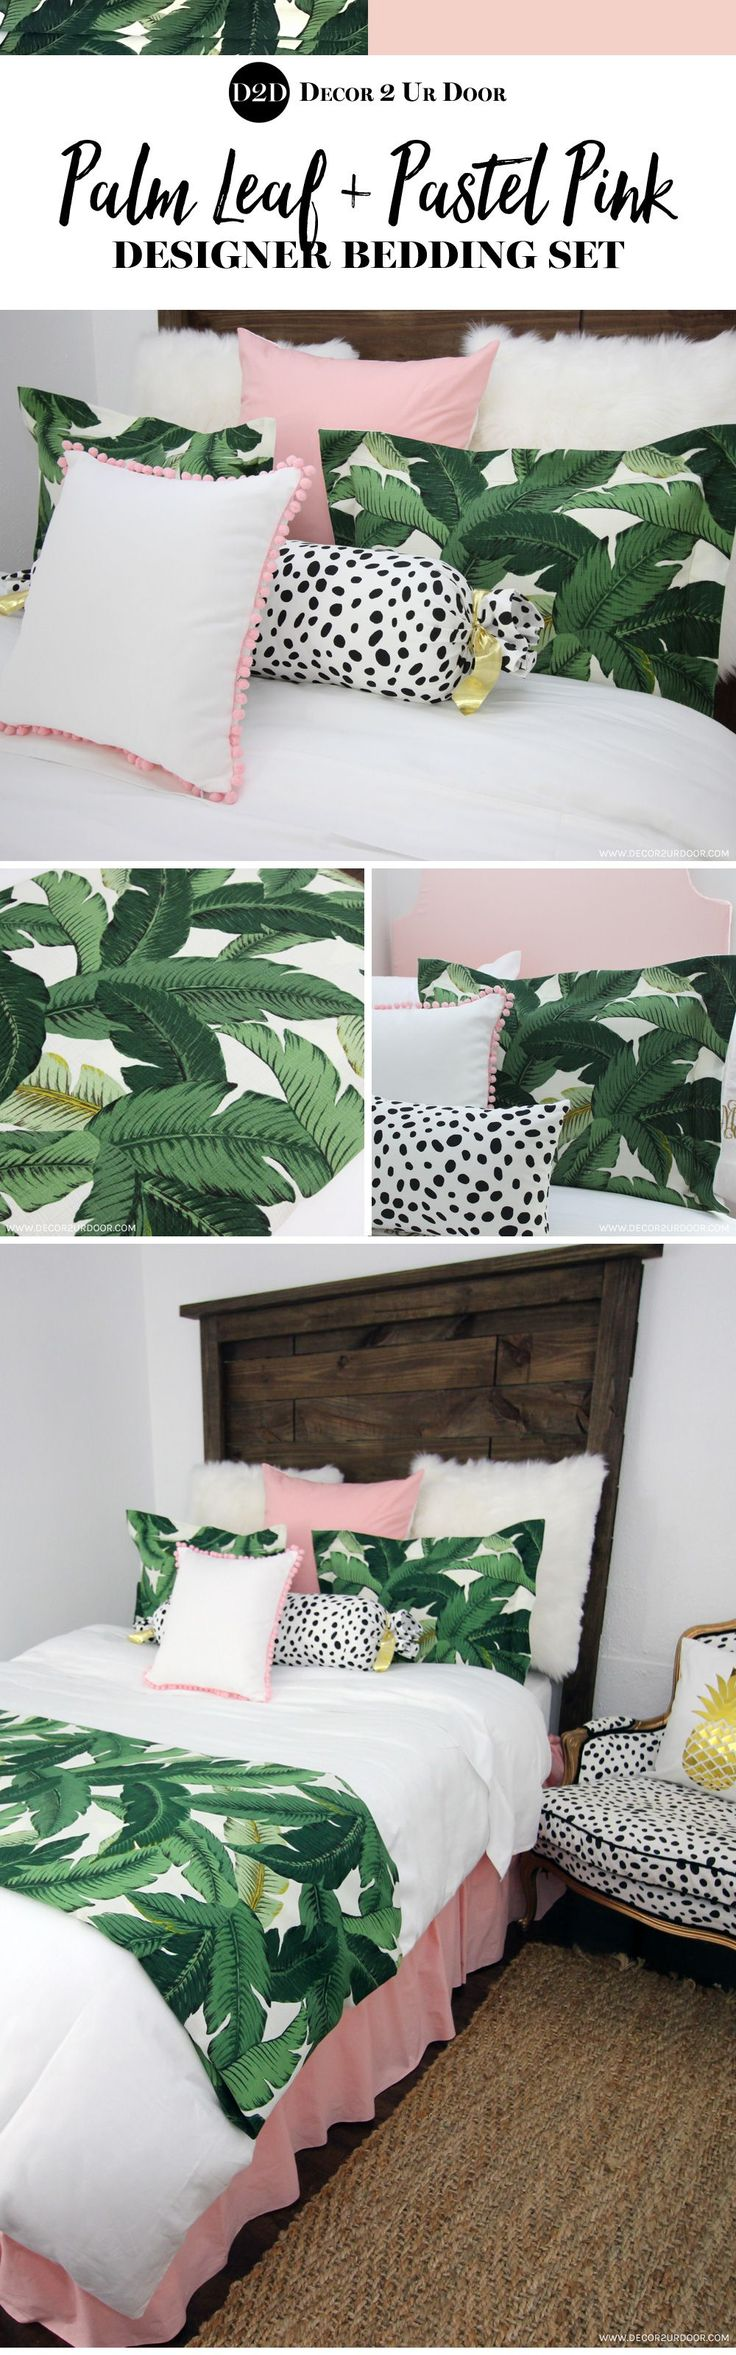 Pink and palm leaf bedding. Perfectly pretty in Palm Beach Pink. Our brand-new and exclusive Palm Leaf and Pink bedding set will be sure to make all of your friends swoon. Featuring the season's hottest palm leaf print paired with textured furs, Dalmatian print, and soft pink to create the prefect trendy room. Add a pop of gold for a bit of glitz and glam.